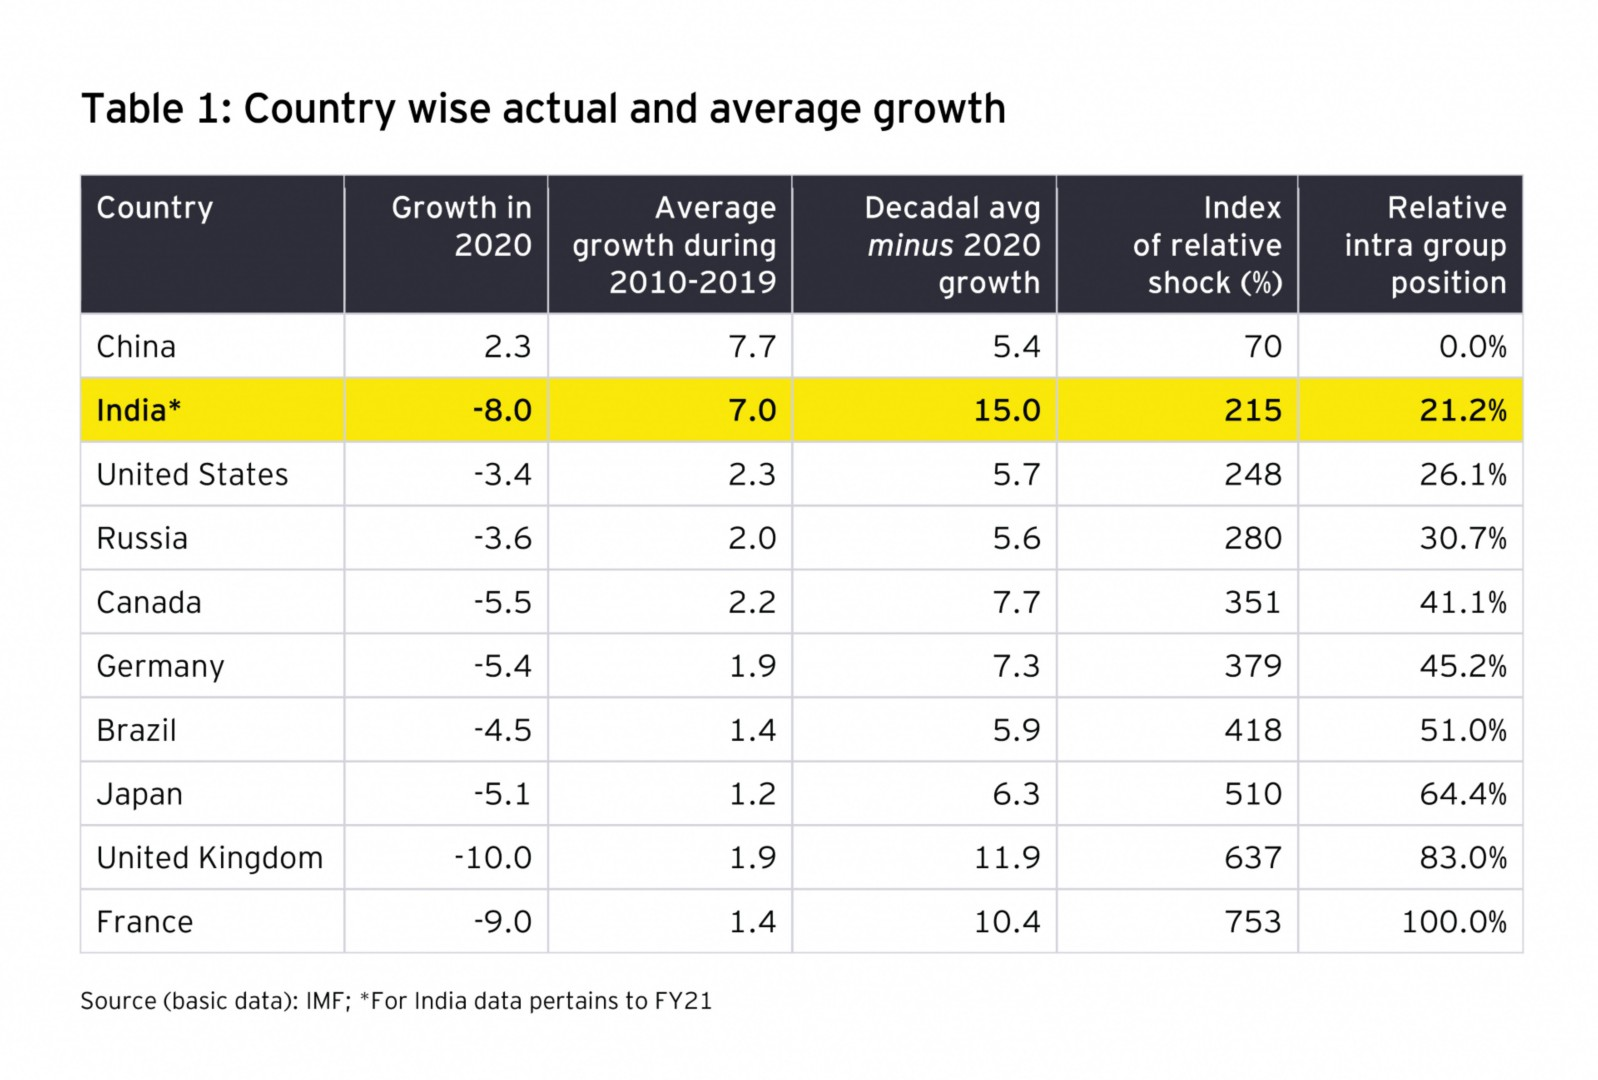 Country wise actual and average growth